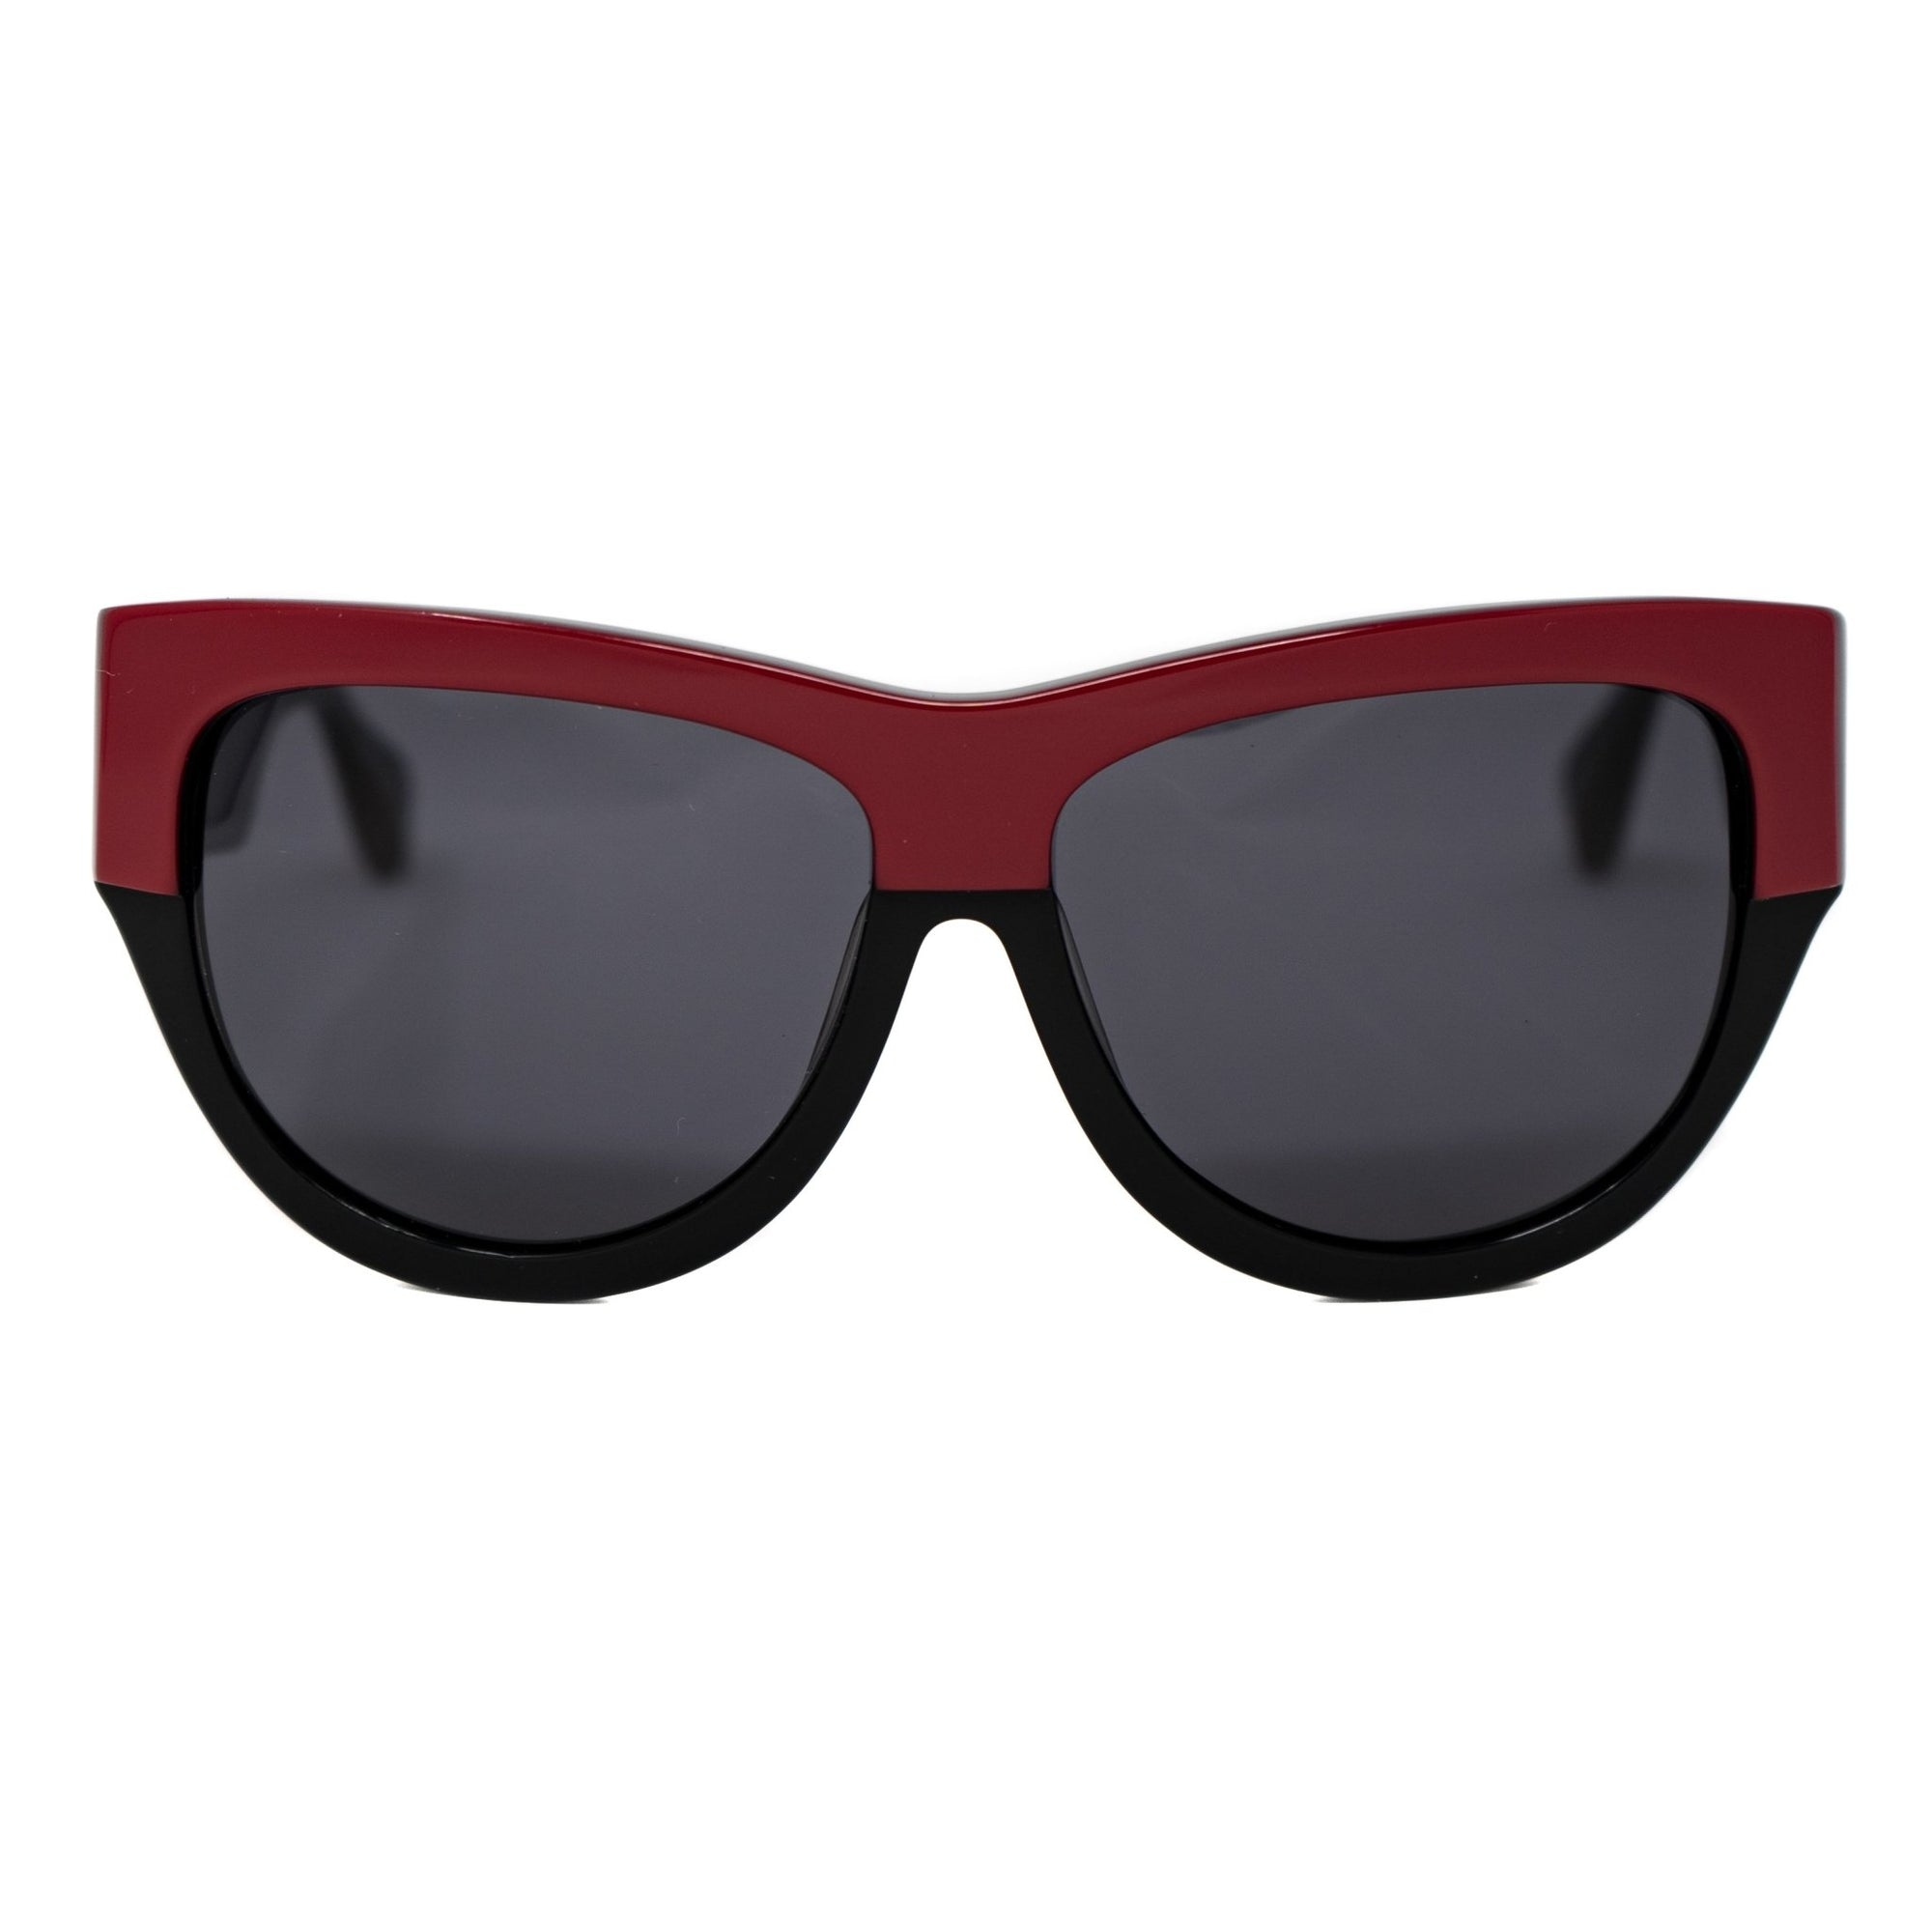 Eley Kishimoto Sunglasses Oversized Wayfarer Red and Black With Black Lenses EK26C1SUN - Watches & Crystals